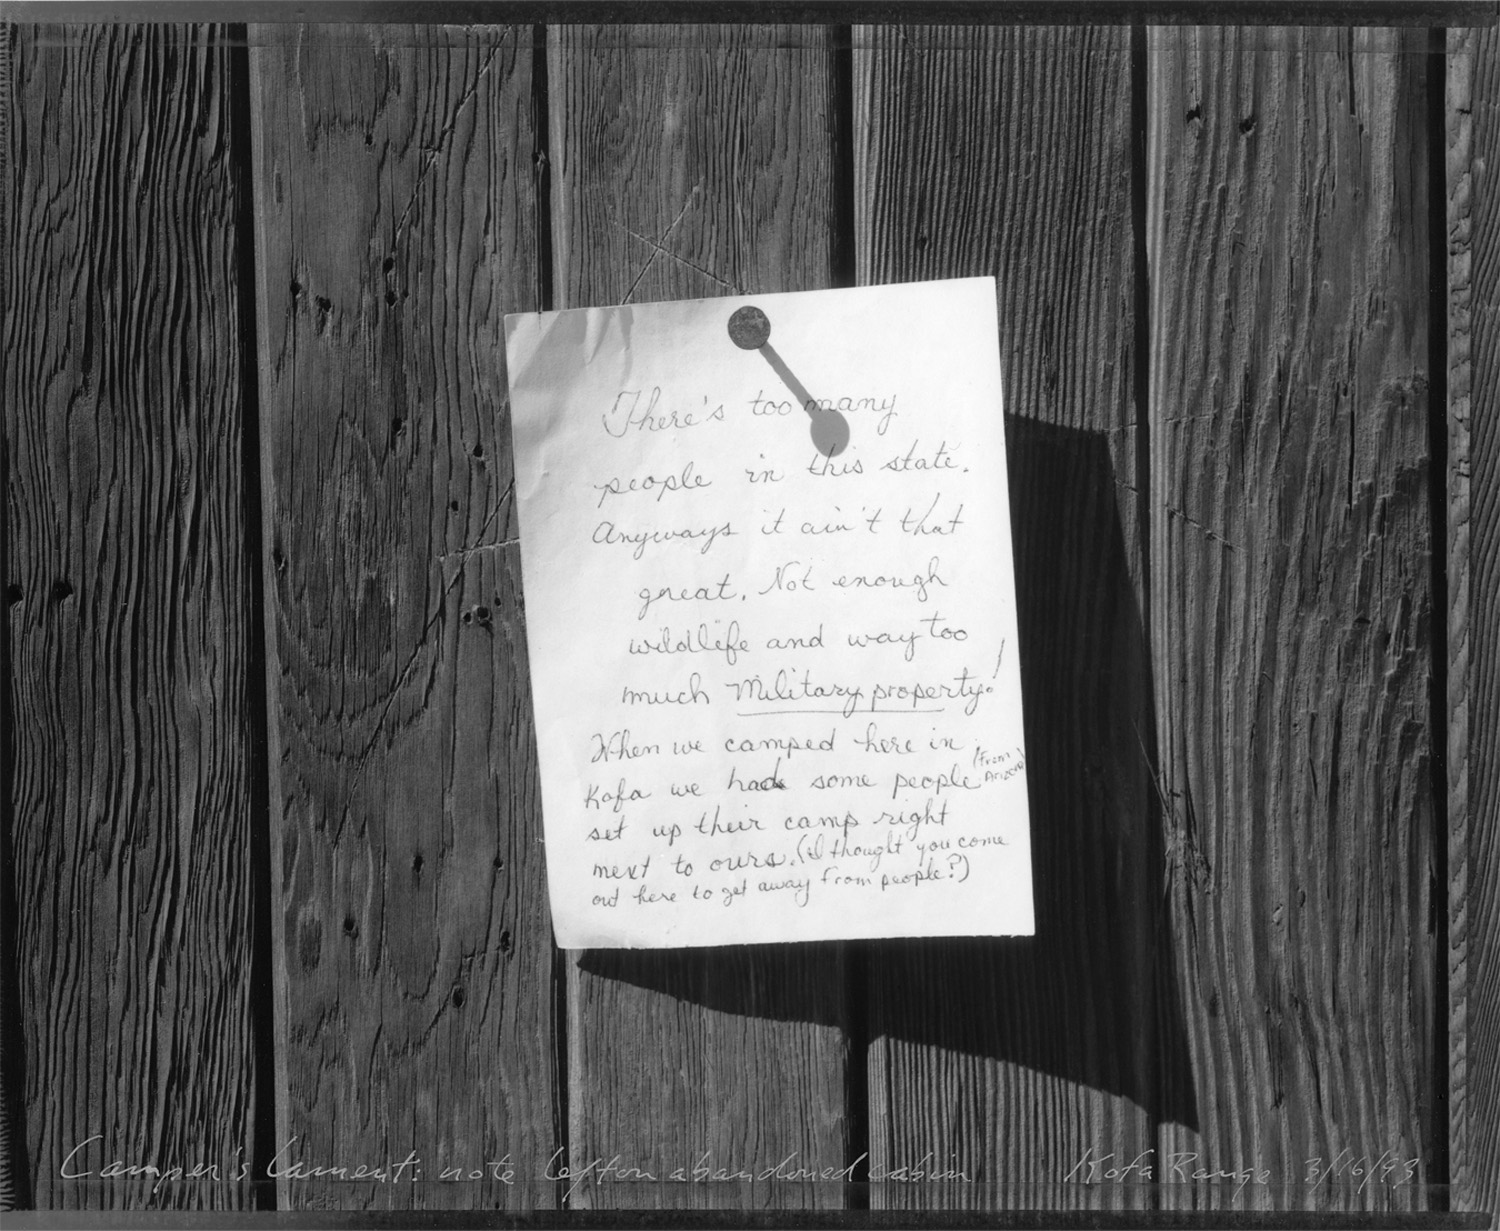 Camper's lament, note left on abandoned cabin, Kofa Range, 1993